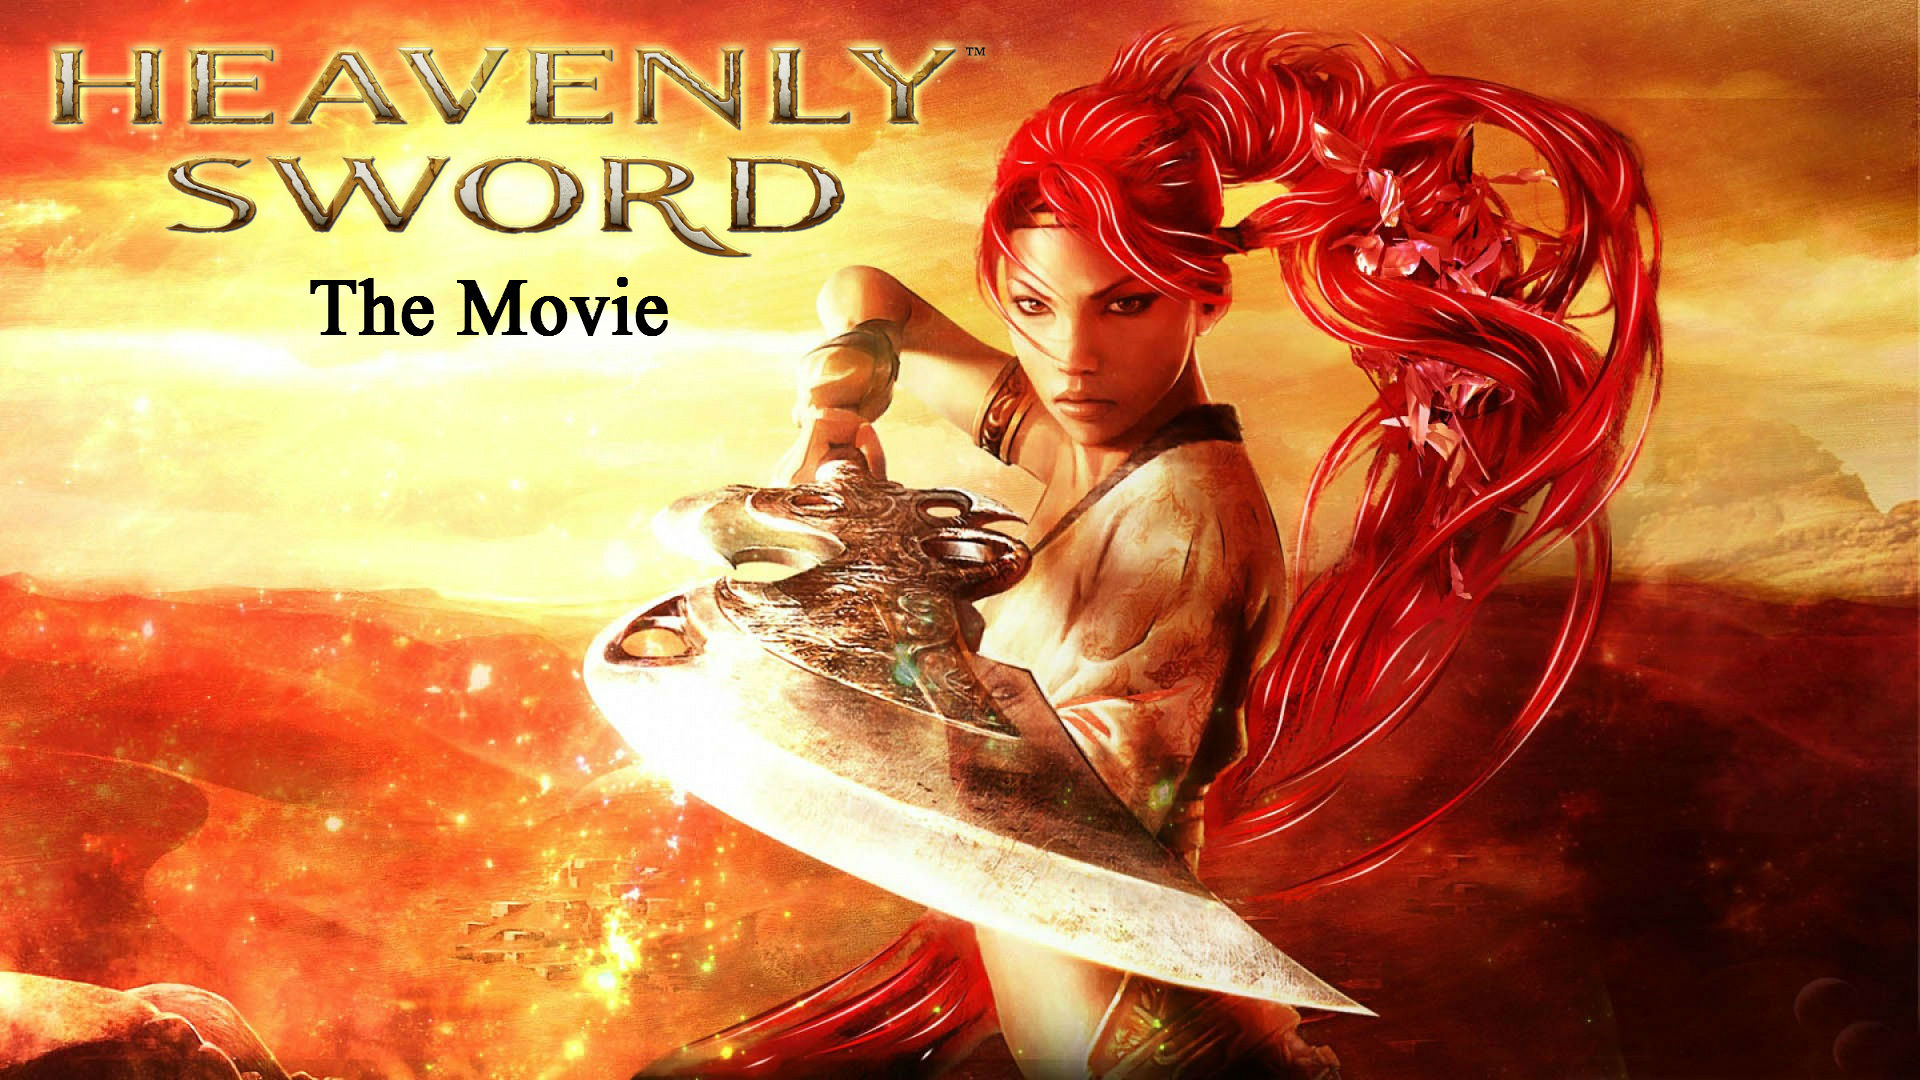 Heavenly Sword Movie Review